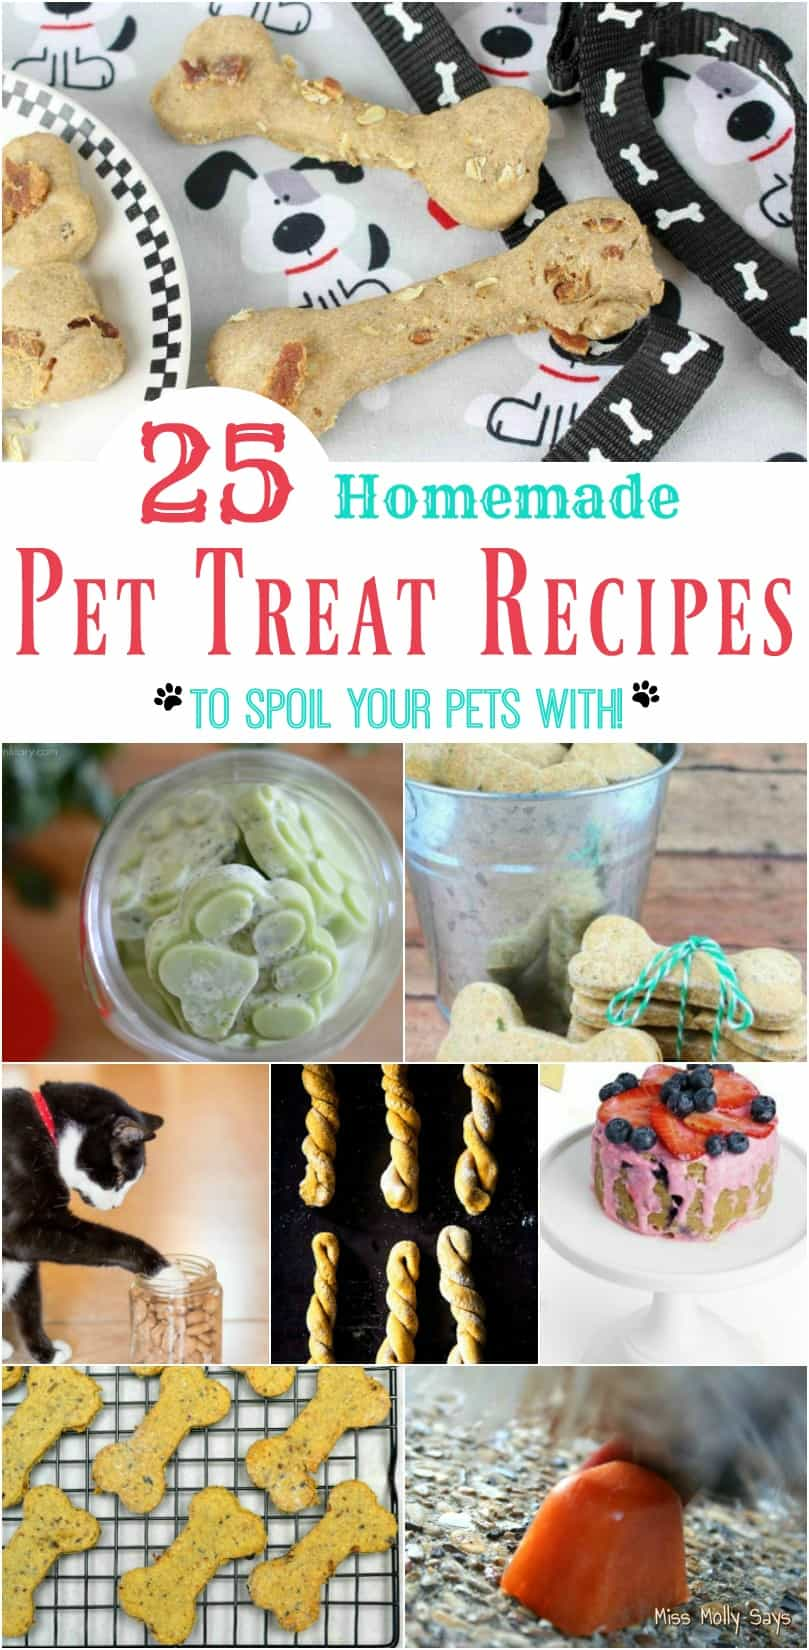 25 Homemade Pet Treat Recipes to Spoil Your Pets With